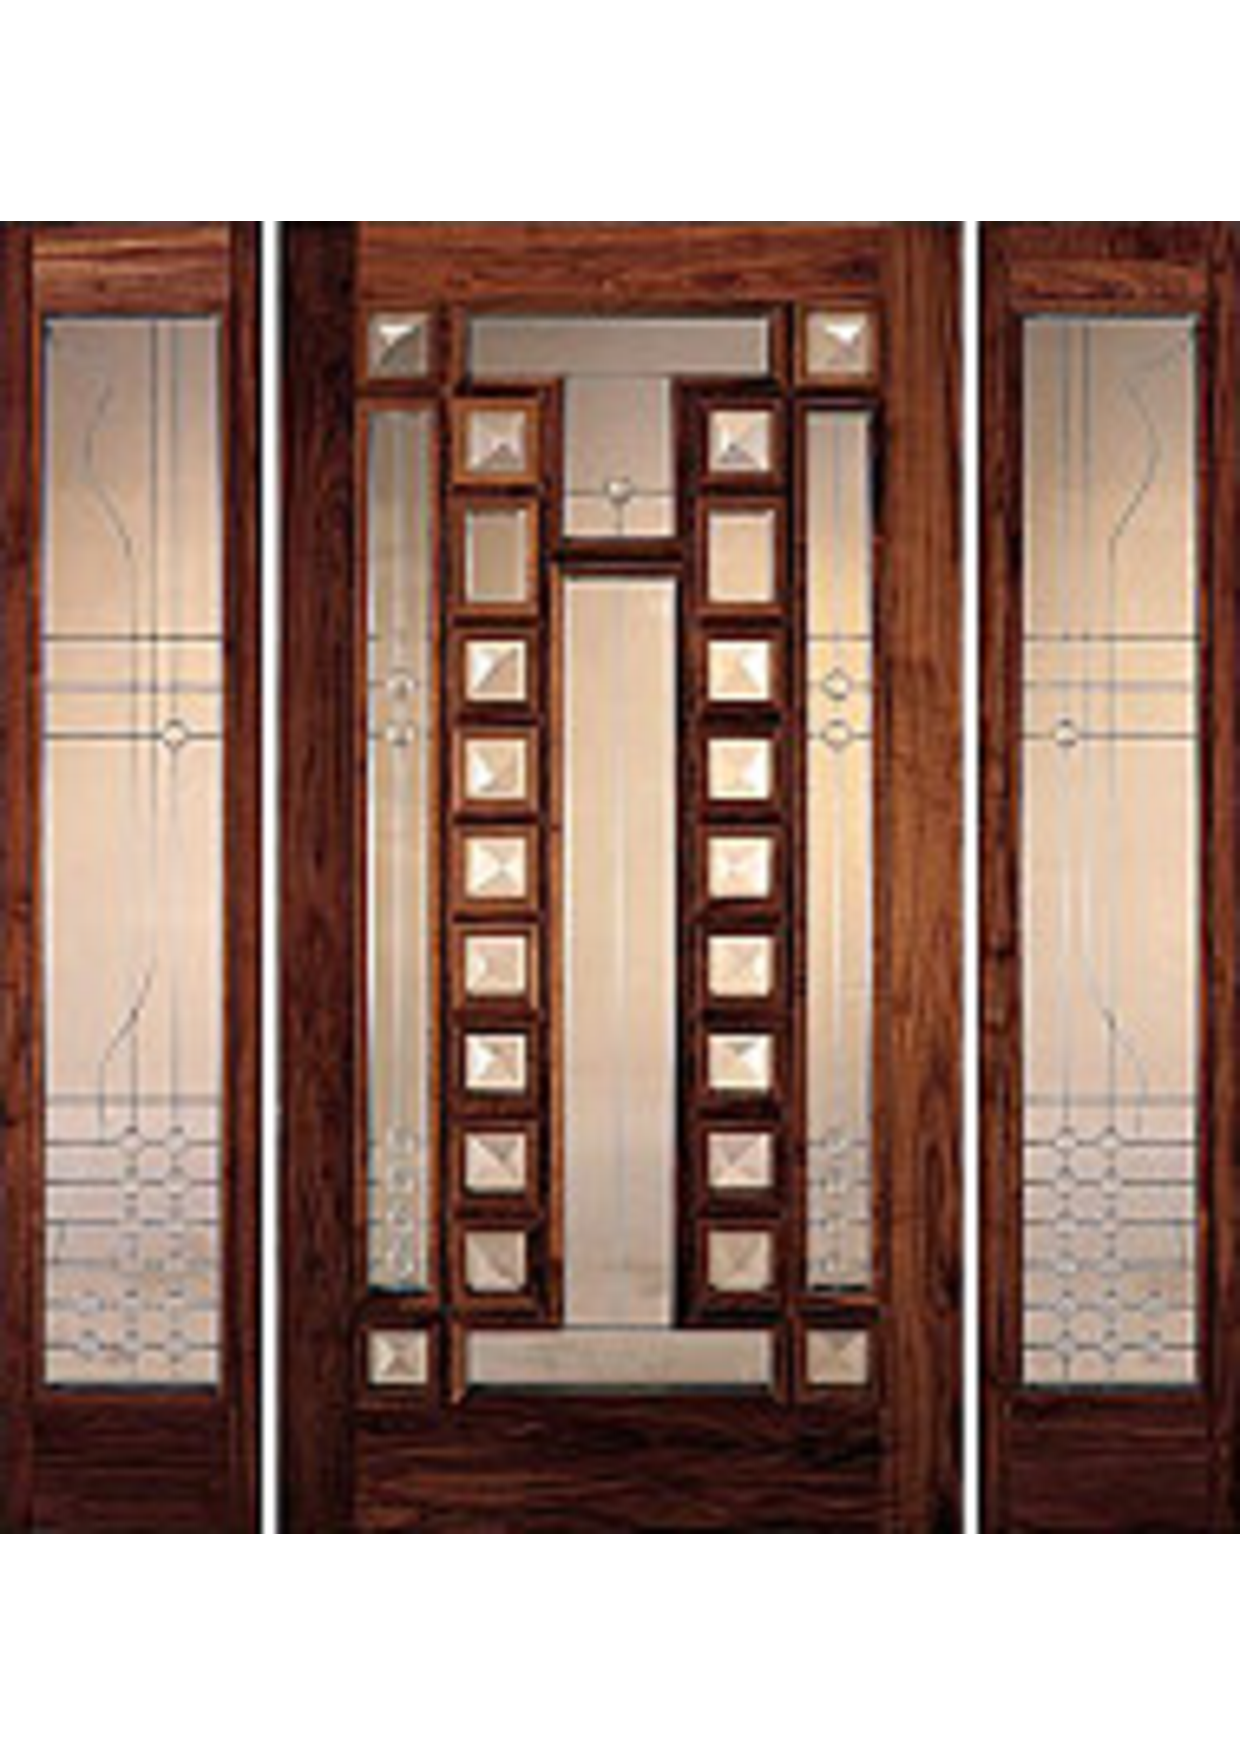 Living room door designs in india nakicphotography for Front door design in india